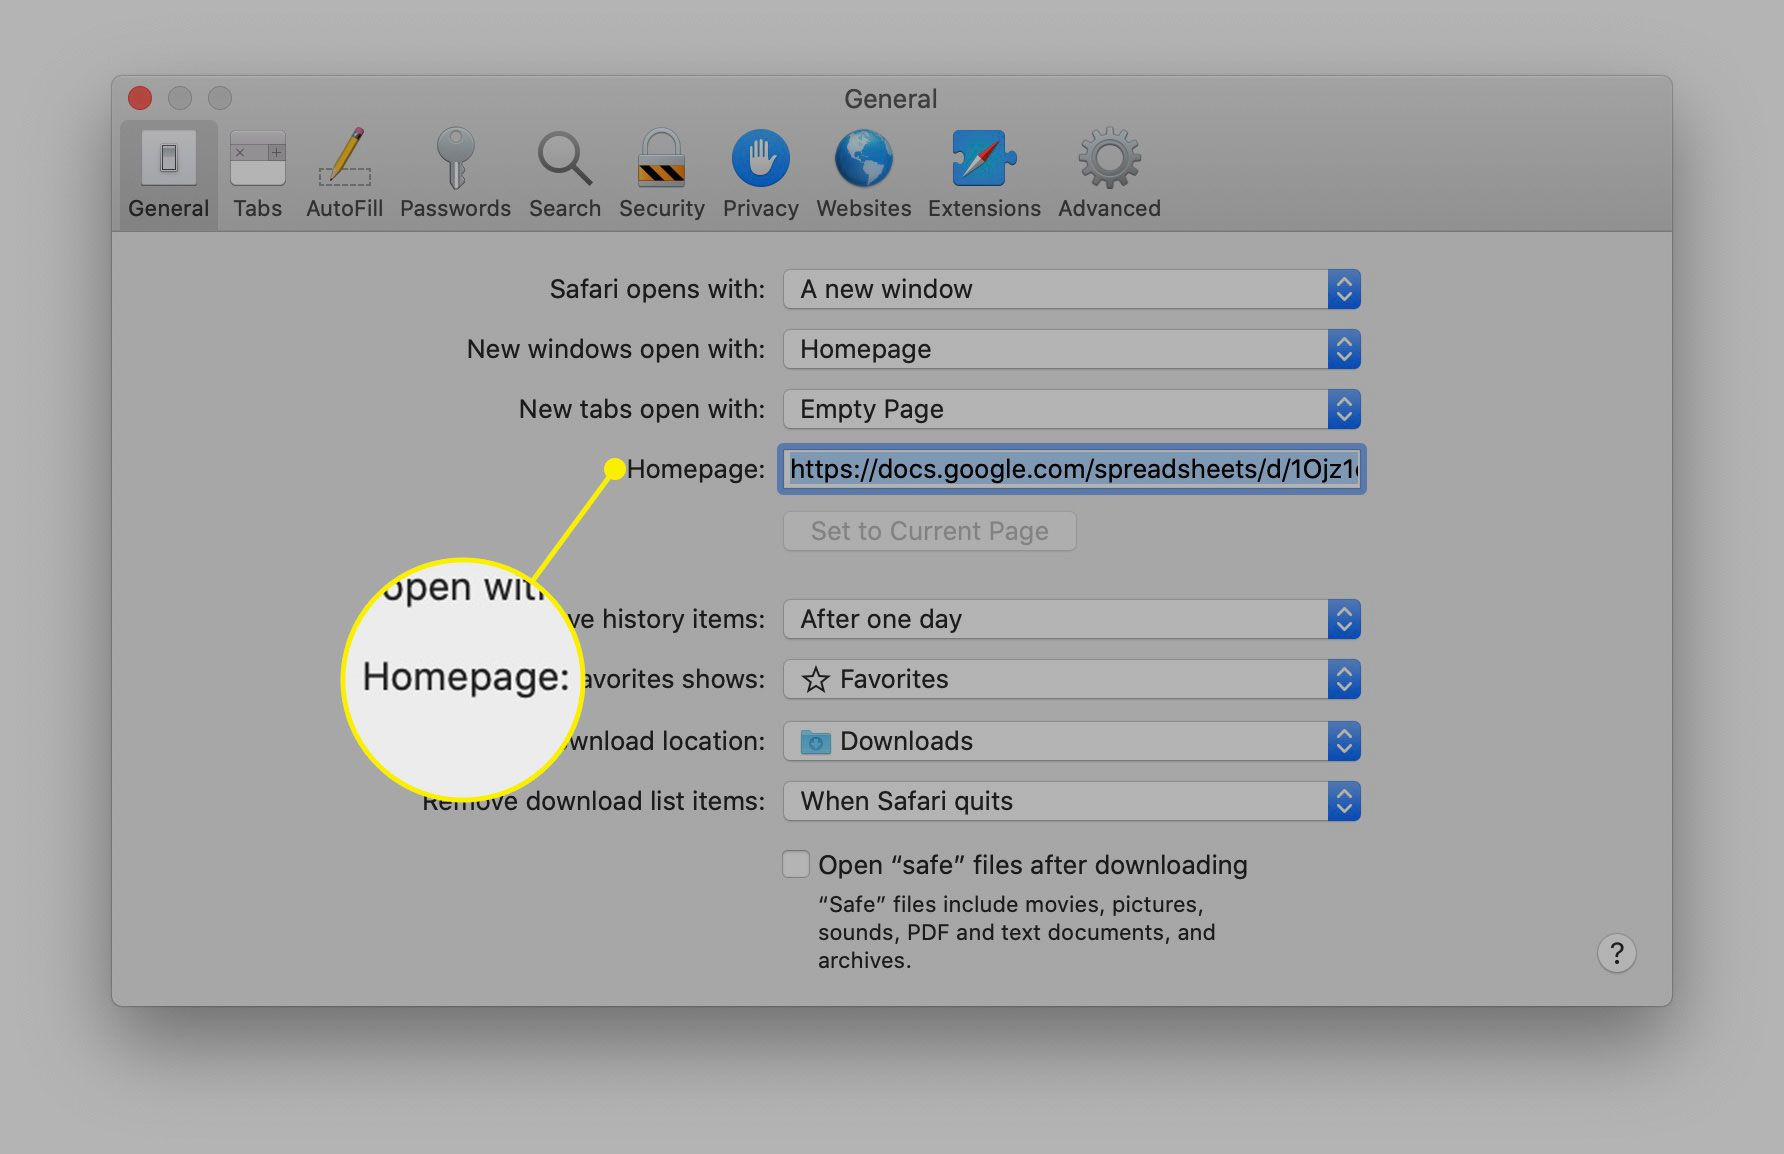 The Homepage option in Safari general preferences